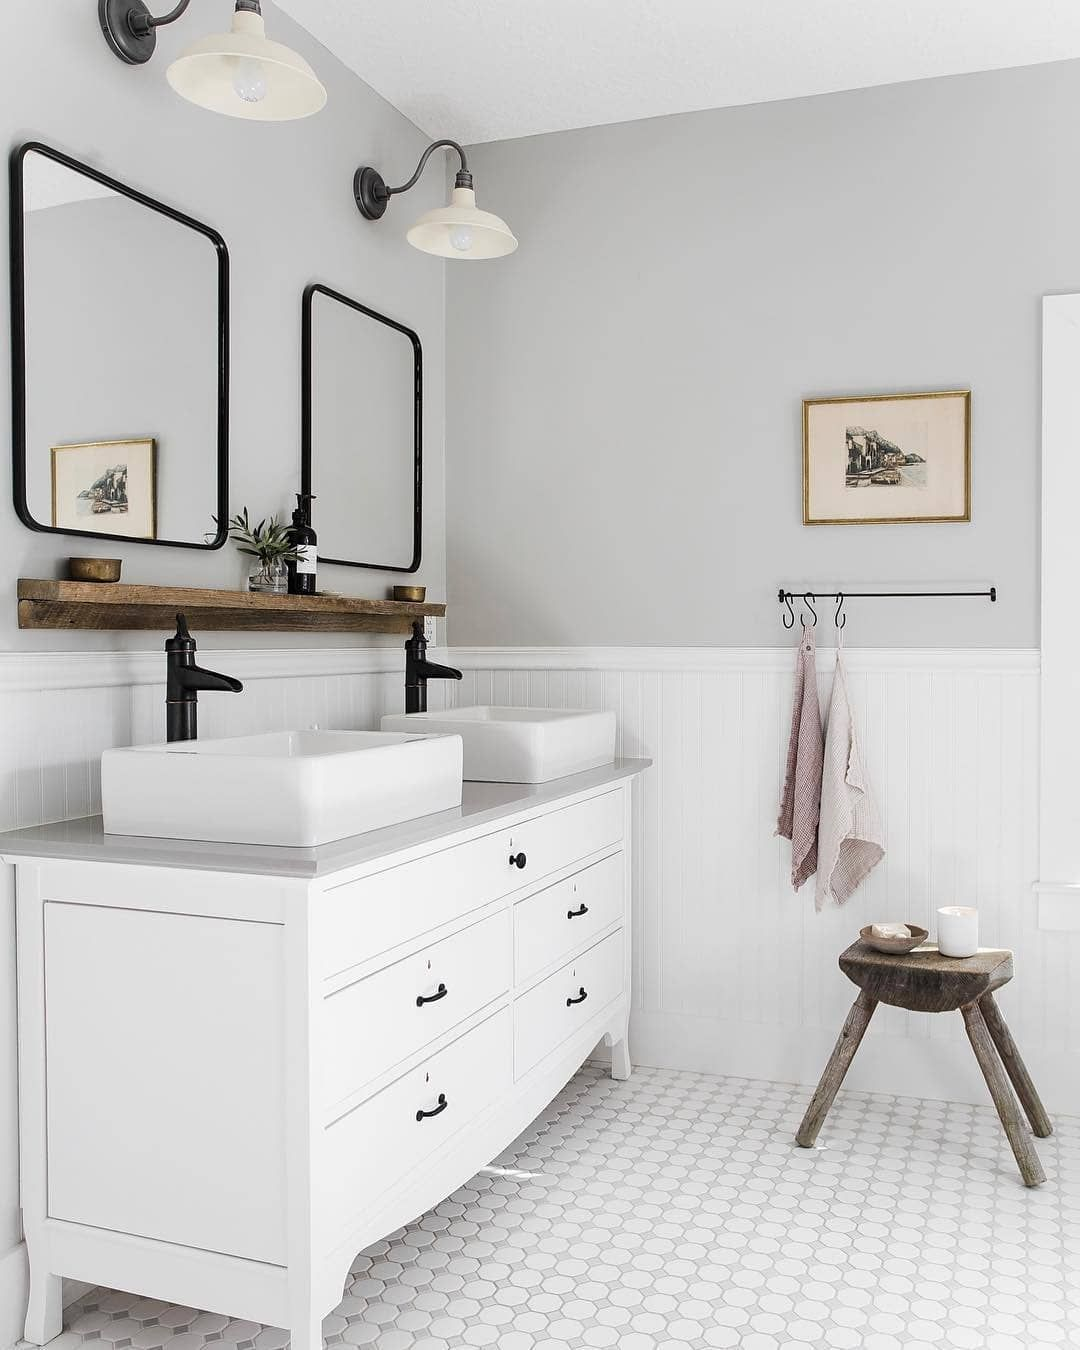 Timeless bathroom design by @laineandlayne. ¿Are you going for